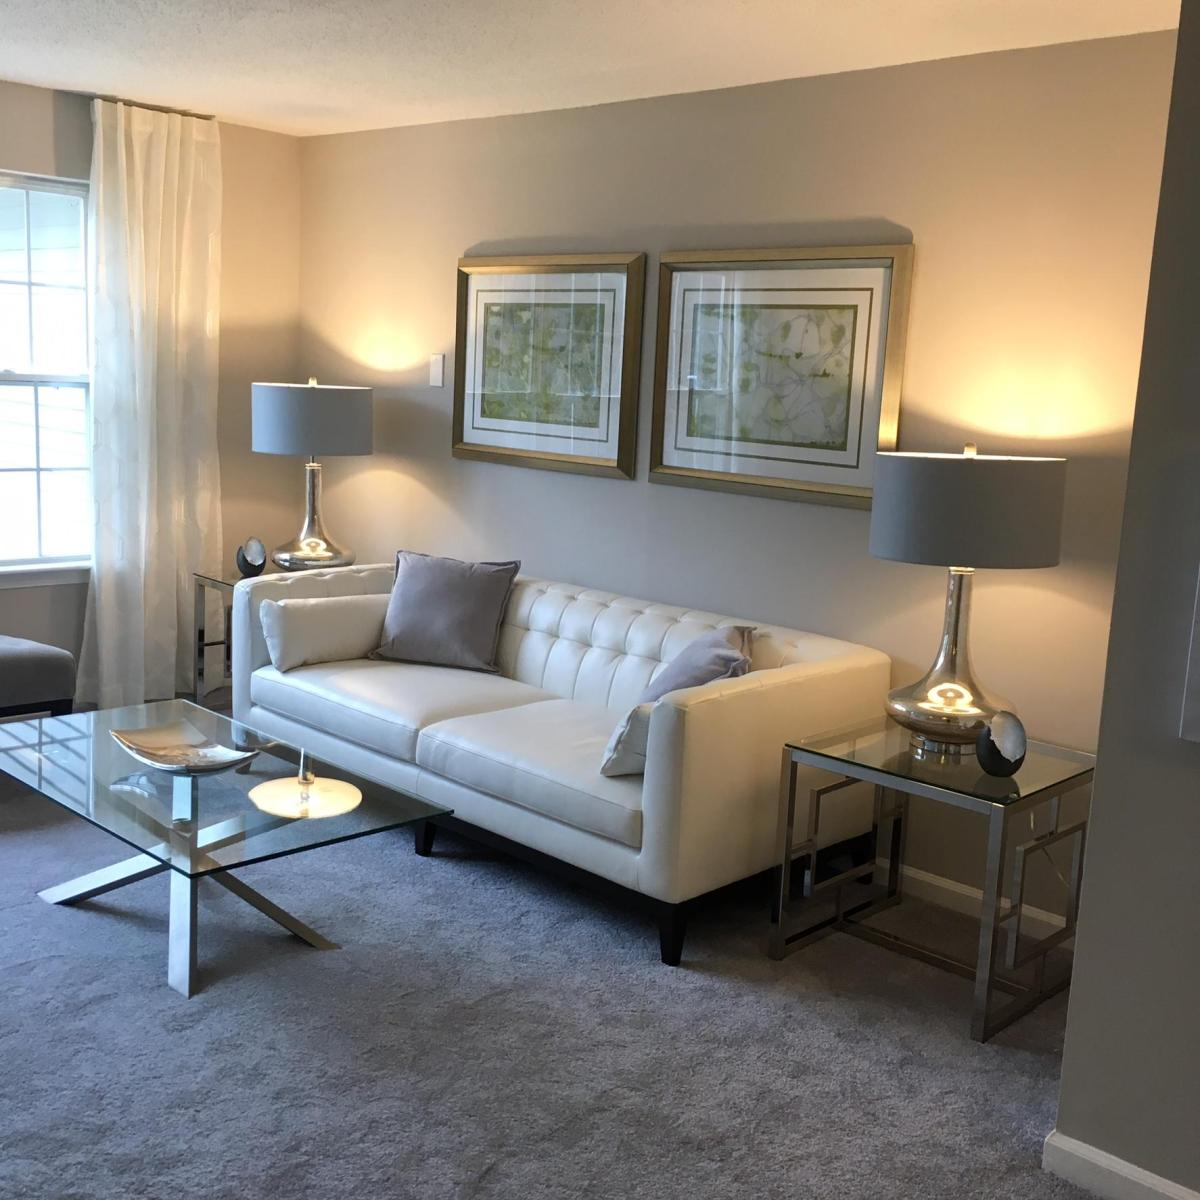 Apartments Listing: Bridgewater Apartments At 110 Brookline Road, Ballston Spa